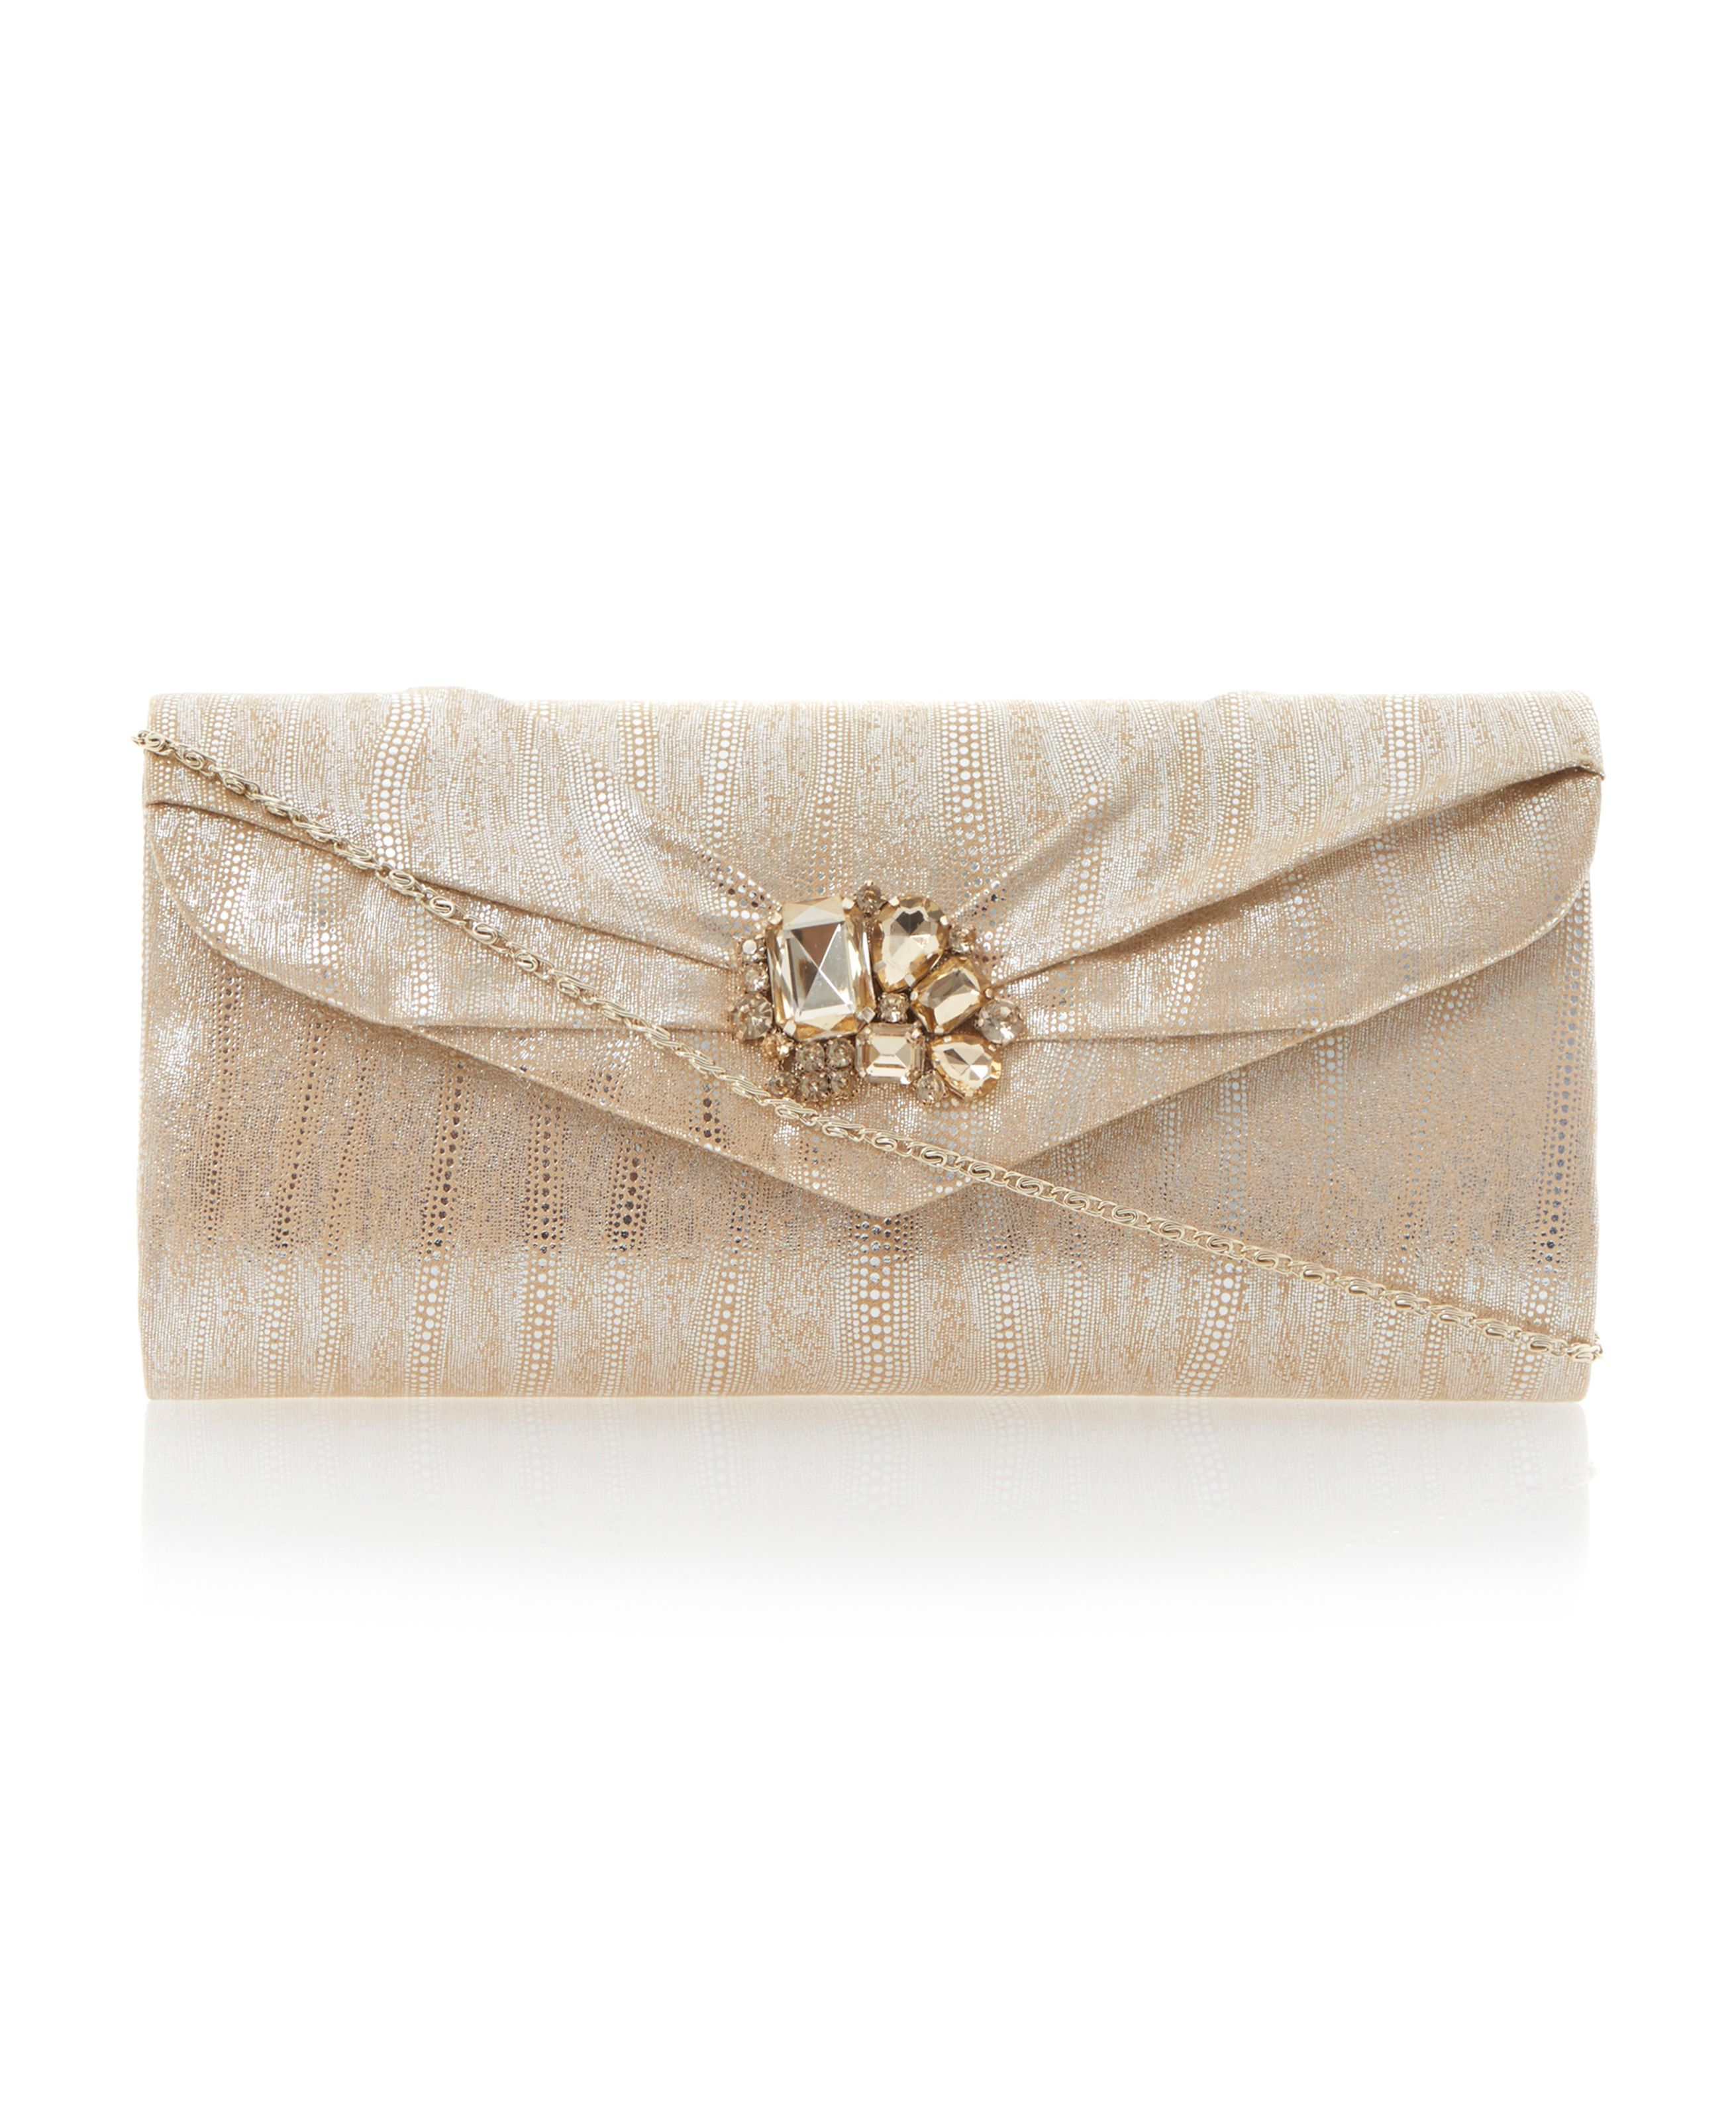 Bamera clutch bag